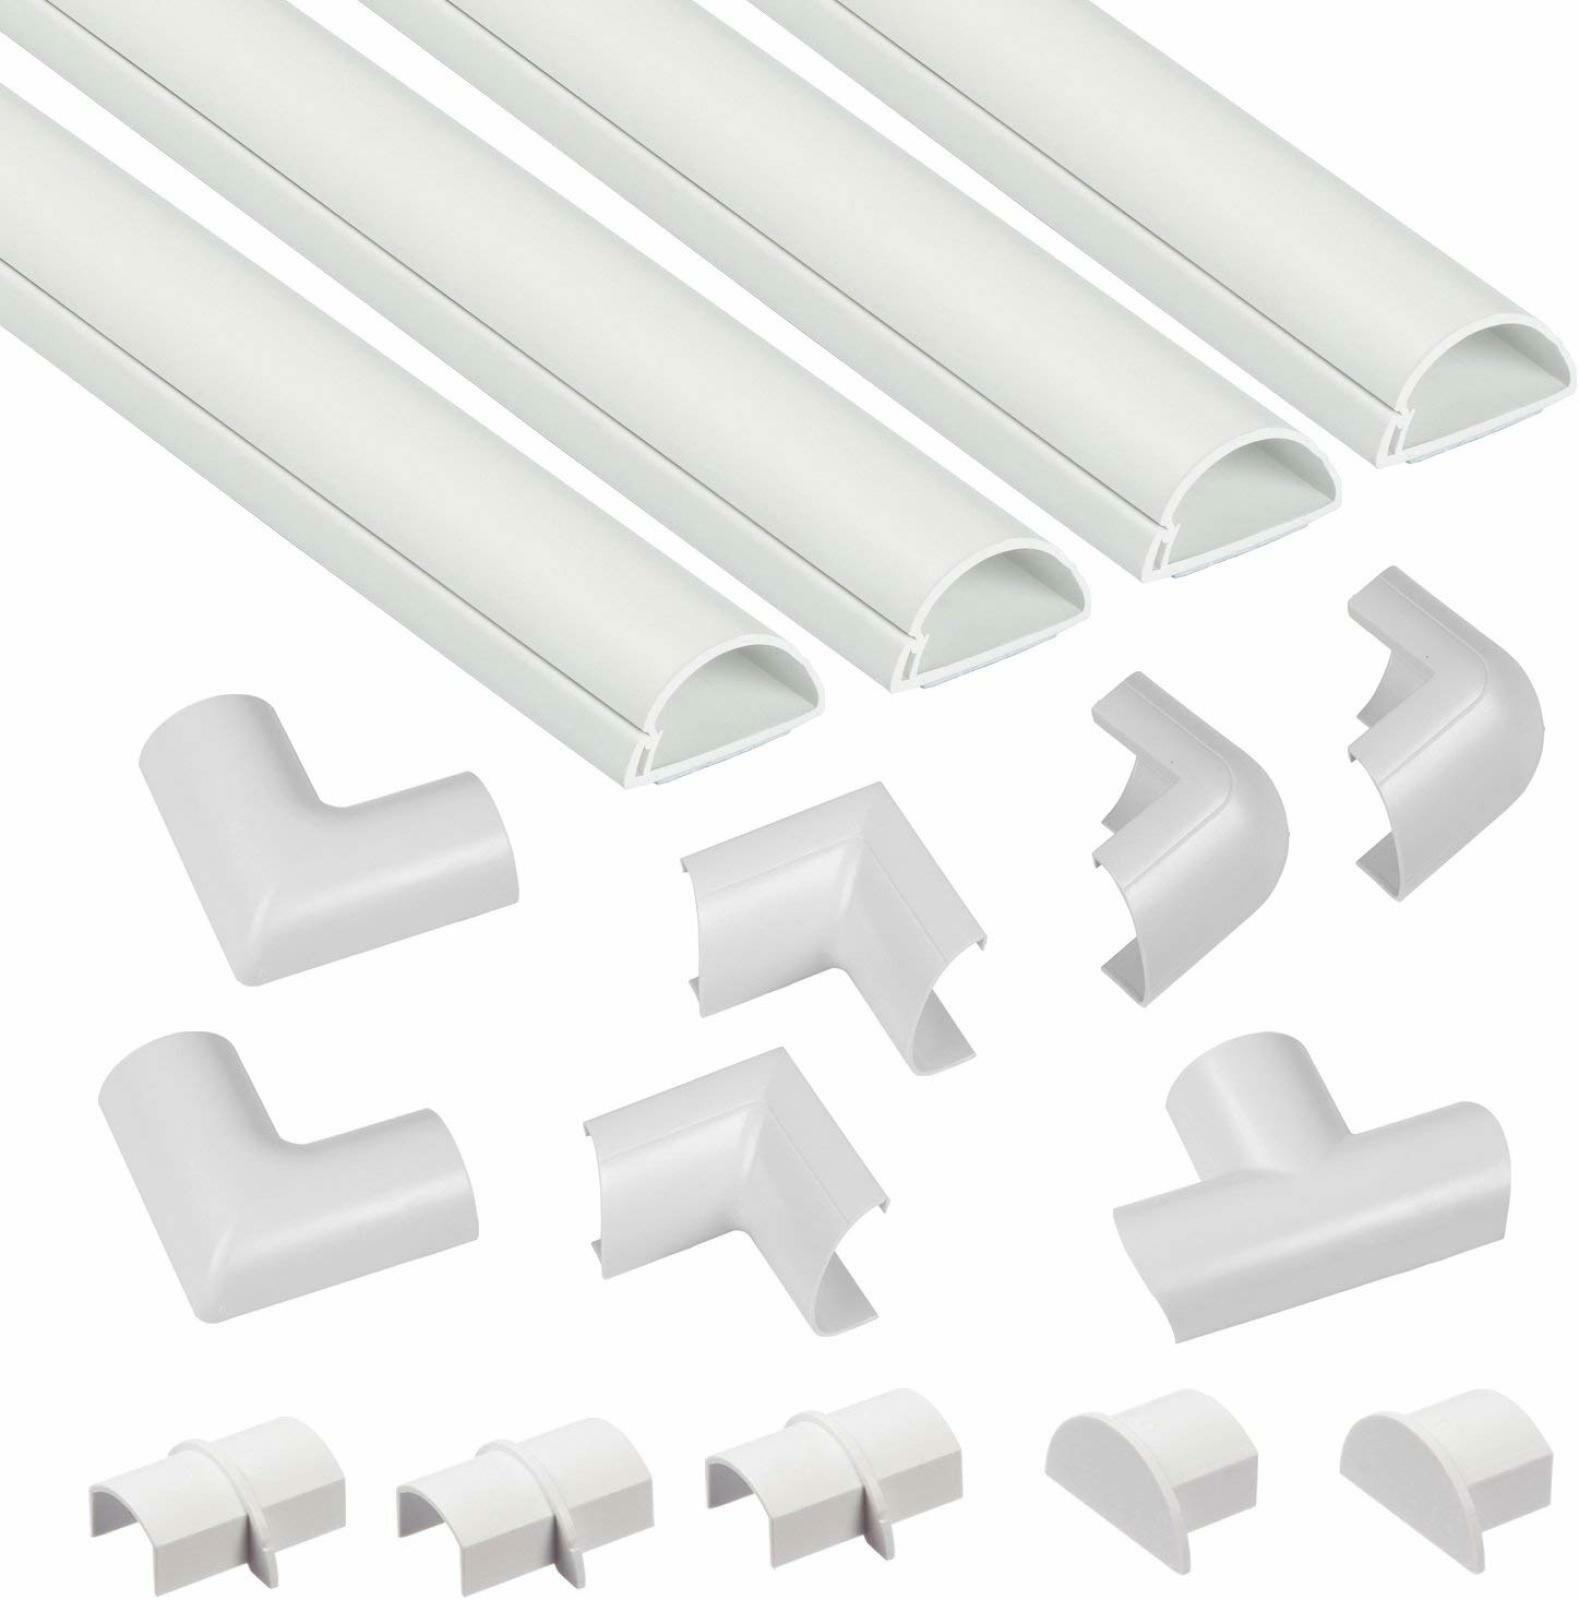 Adhesive Cable Tidy Mini Wire Trunking Conduit Tidy Hides Cables TV Wall Cabling